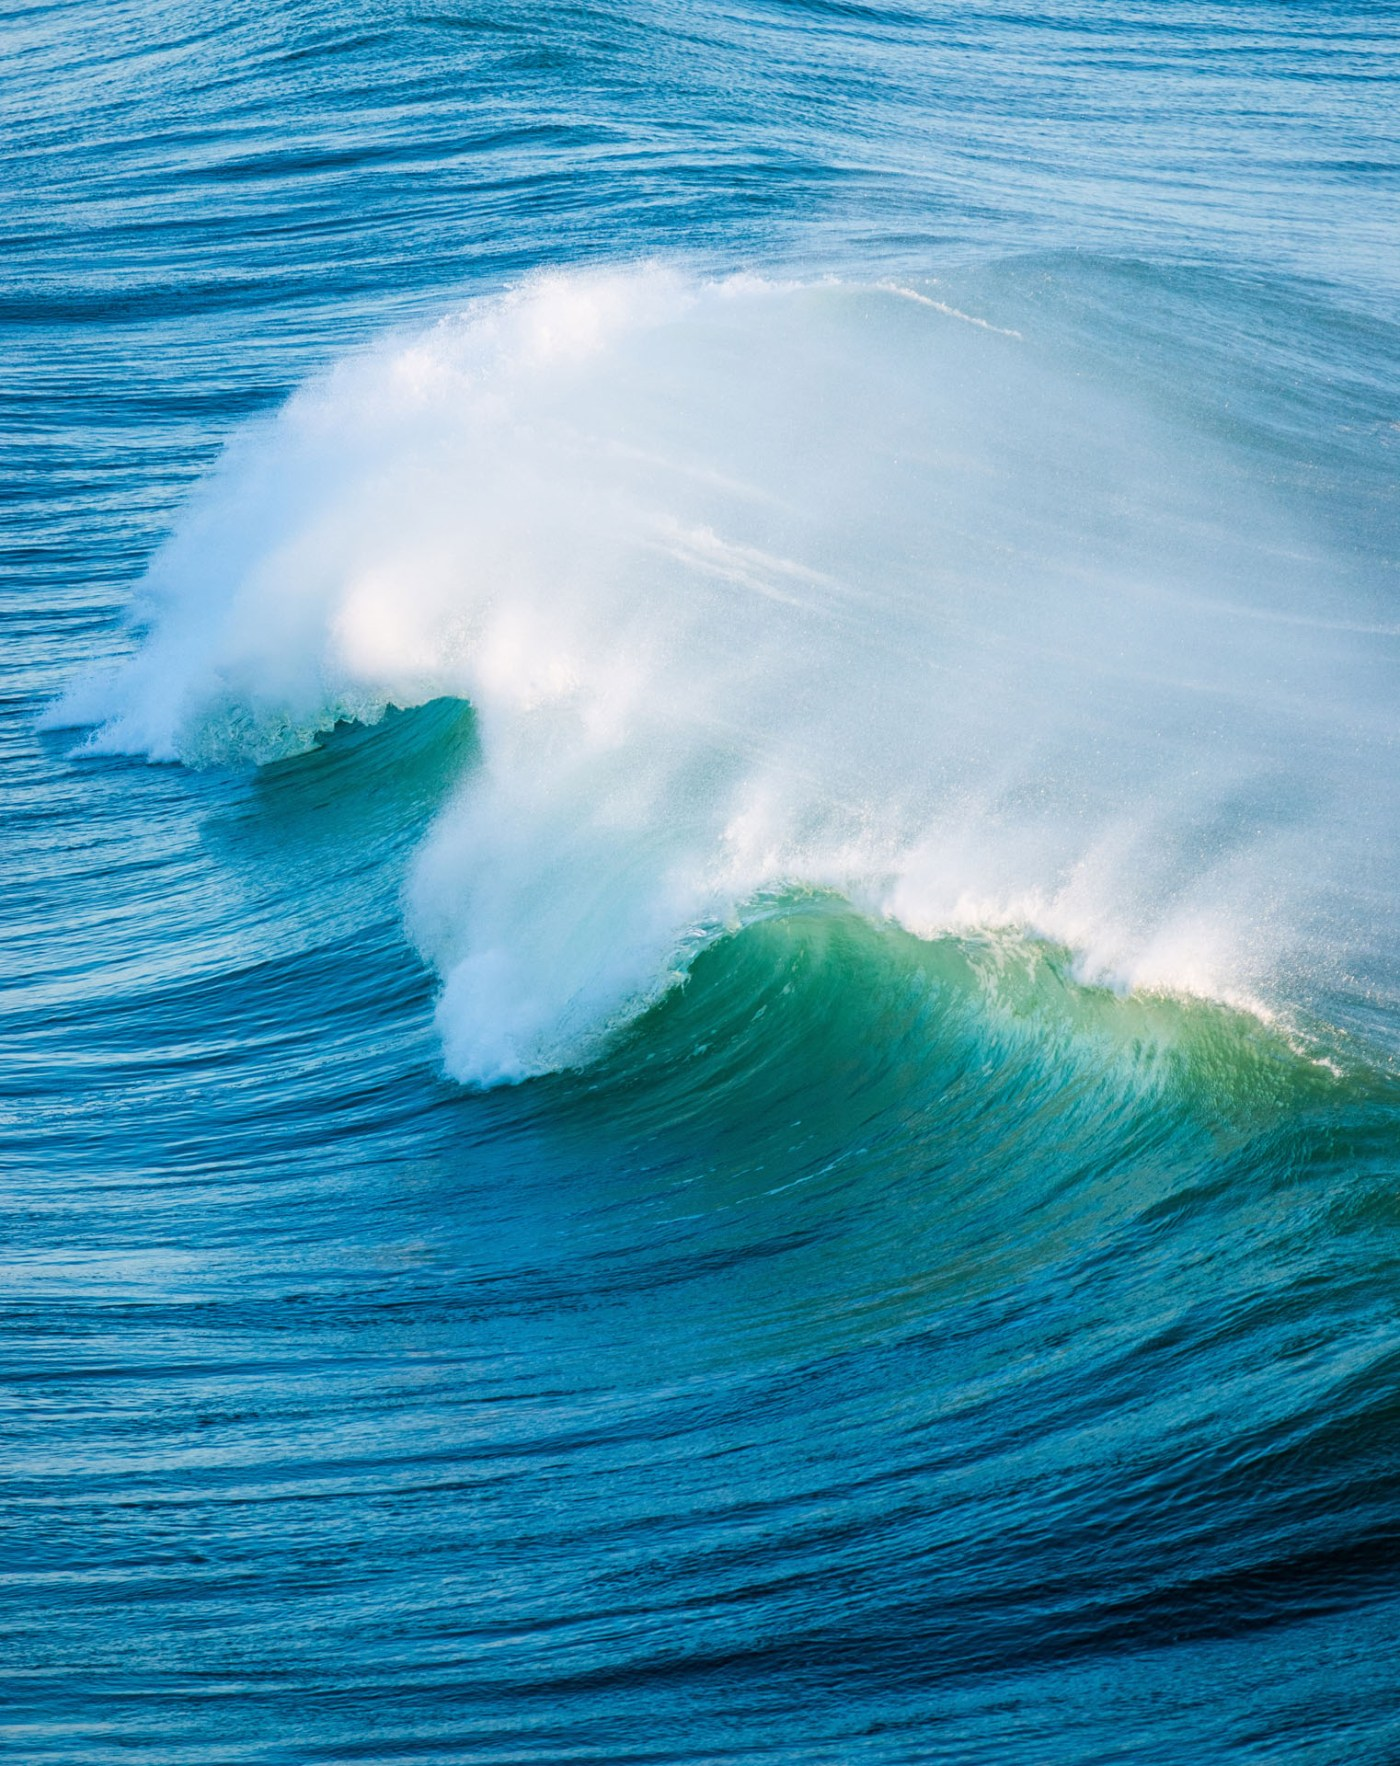 Emerald Waves - Franzi Photography